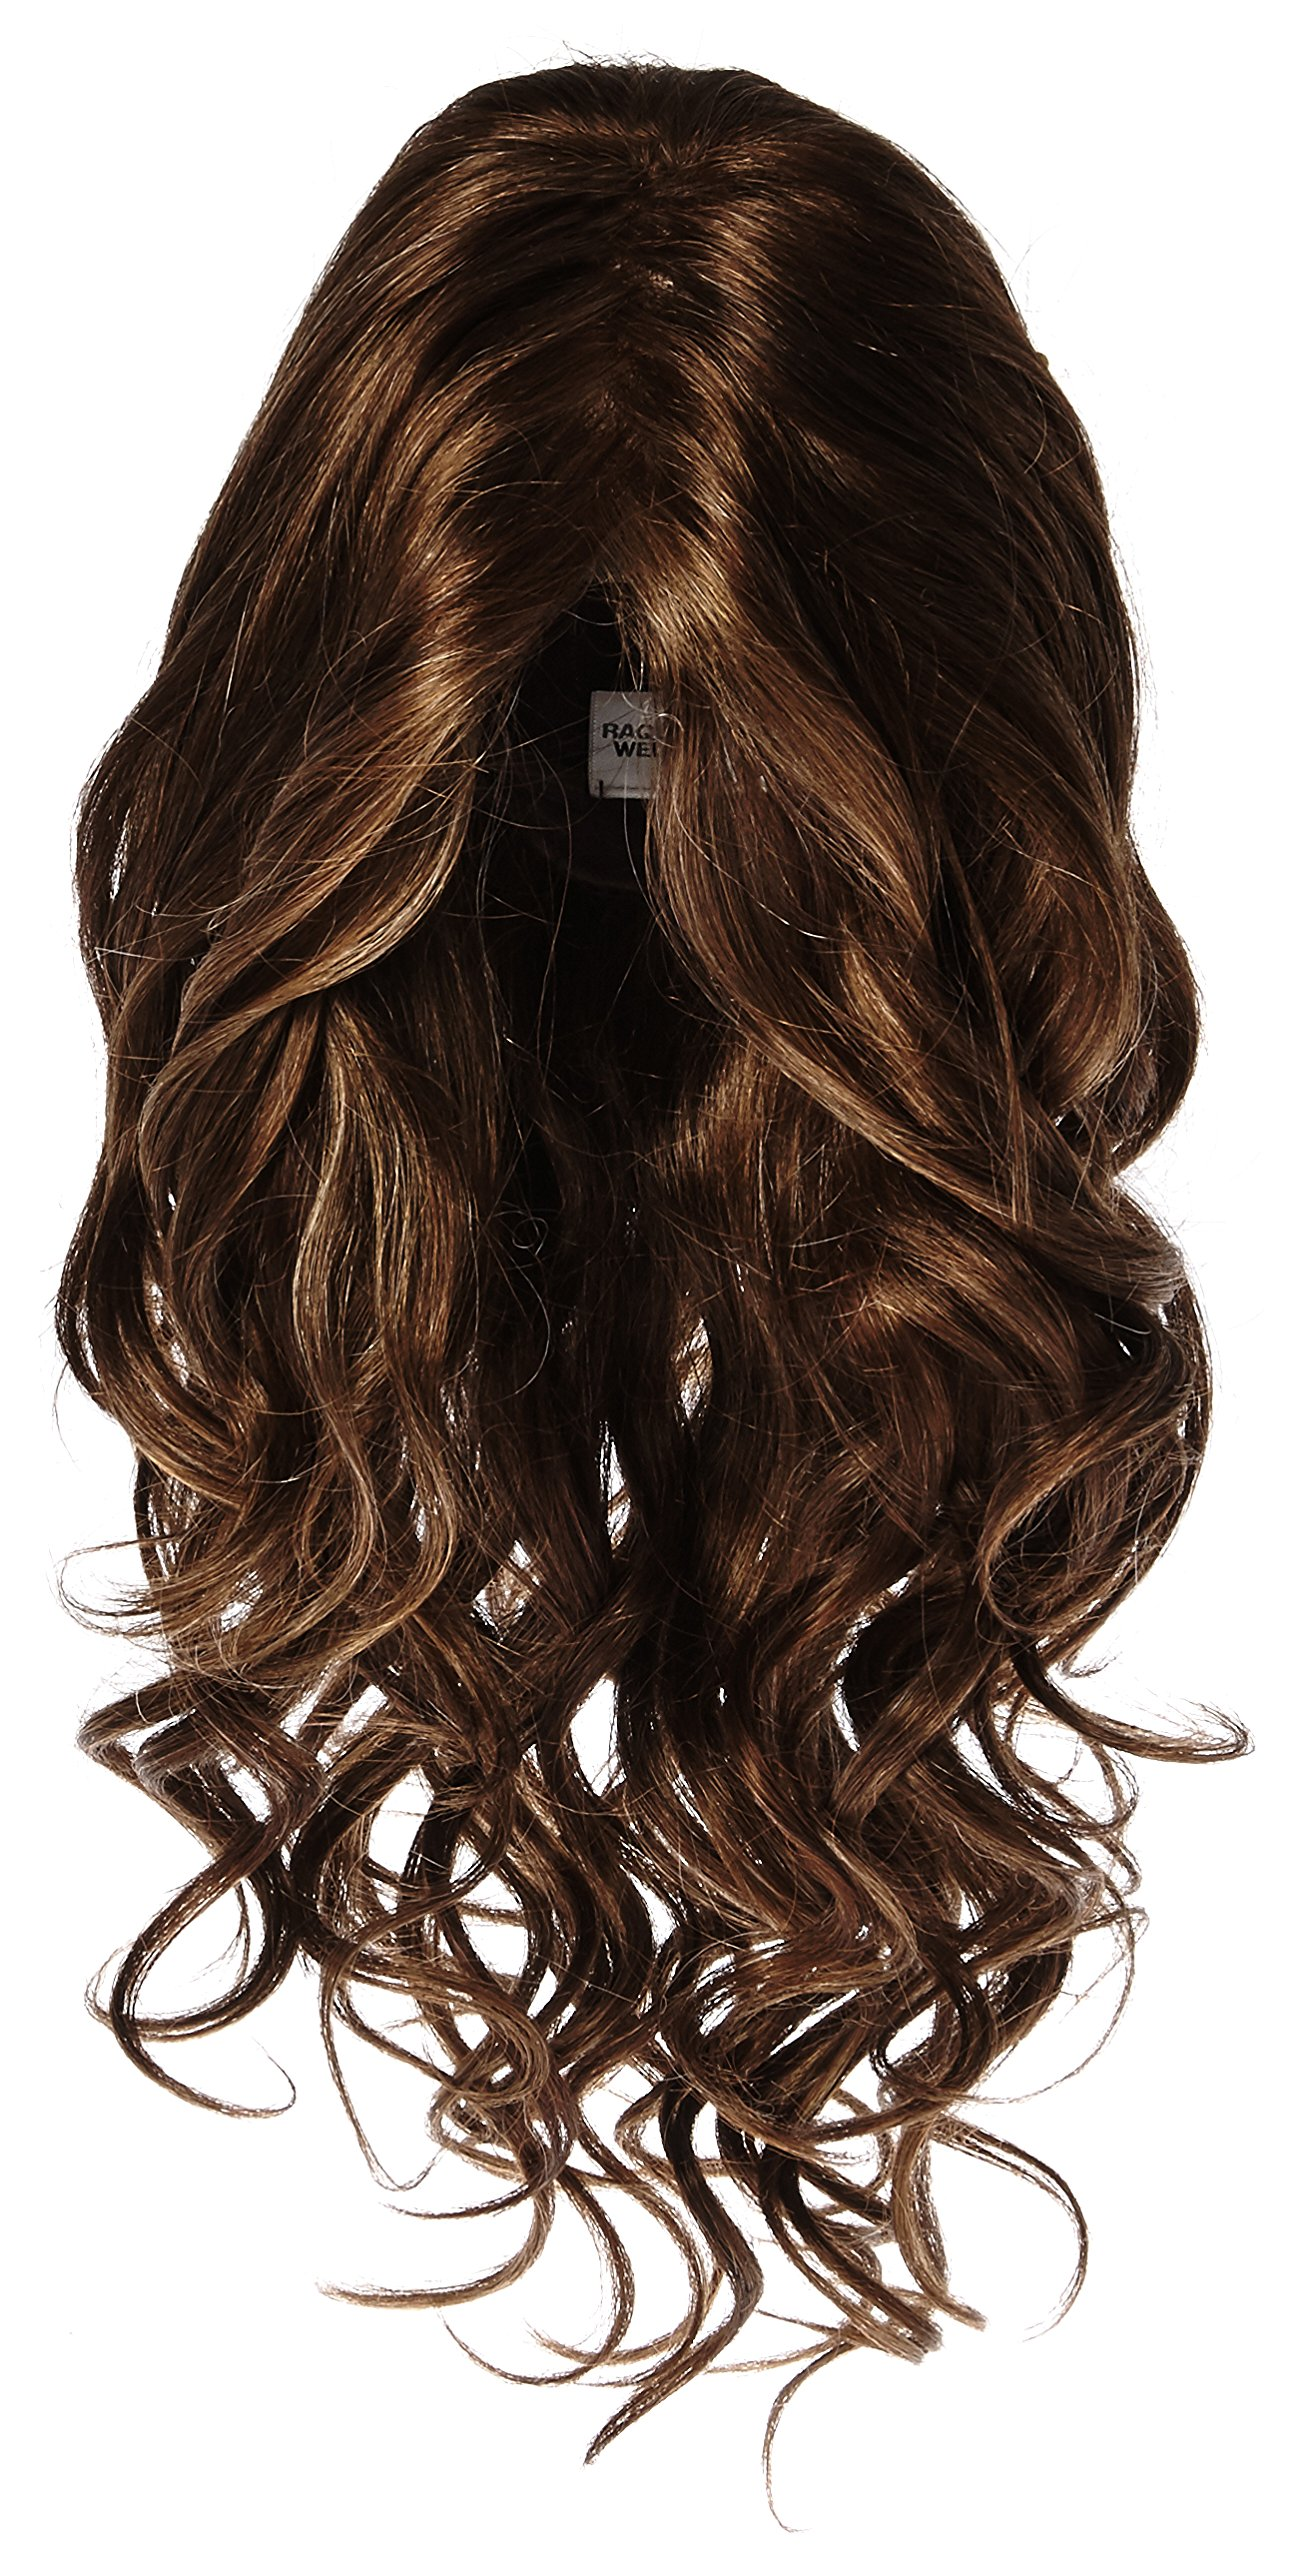 Hairdo Hairwear Raquel Welch Downtime Collection Long And Luscious Hair Wig, R3025S+ Glazed Cinnamon by HairDo (Image #1)